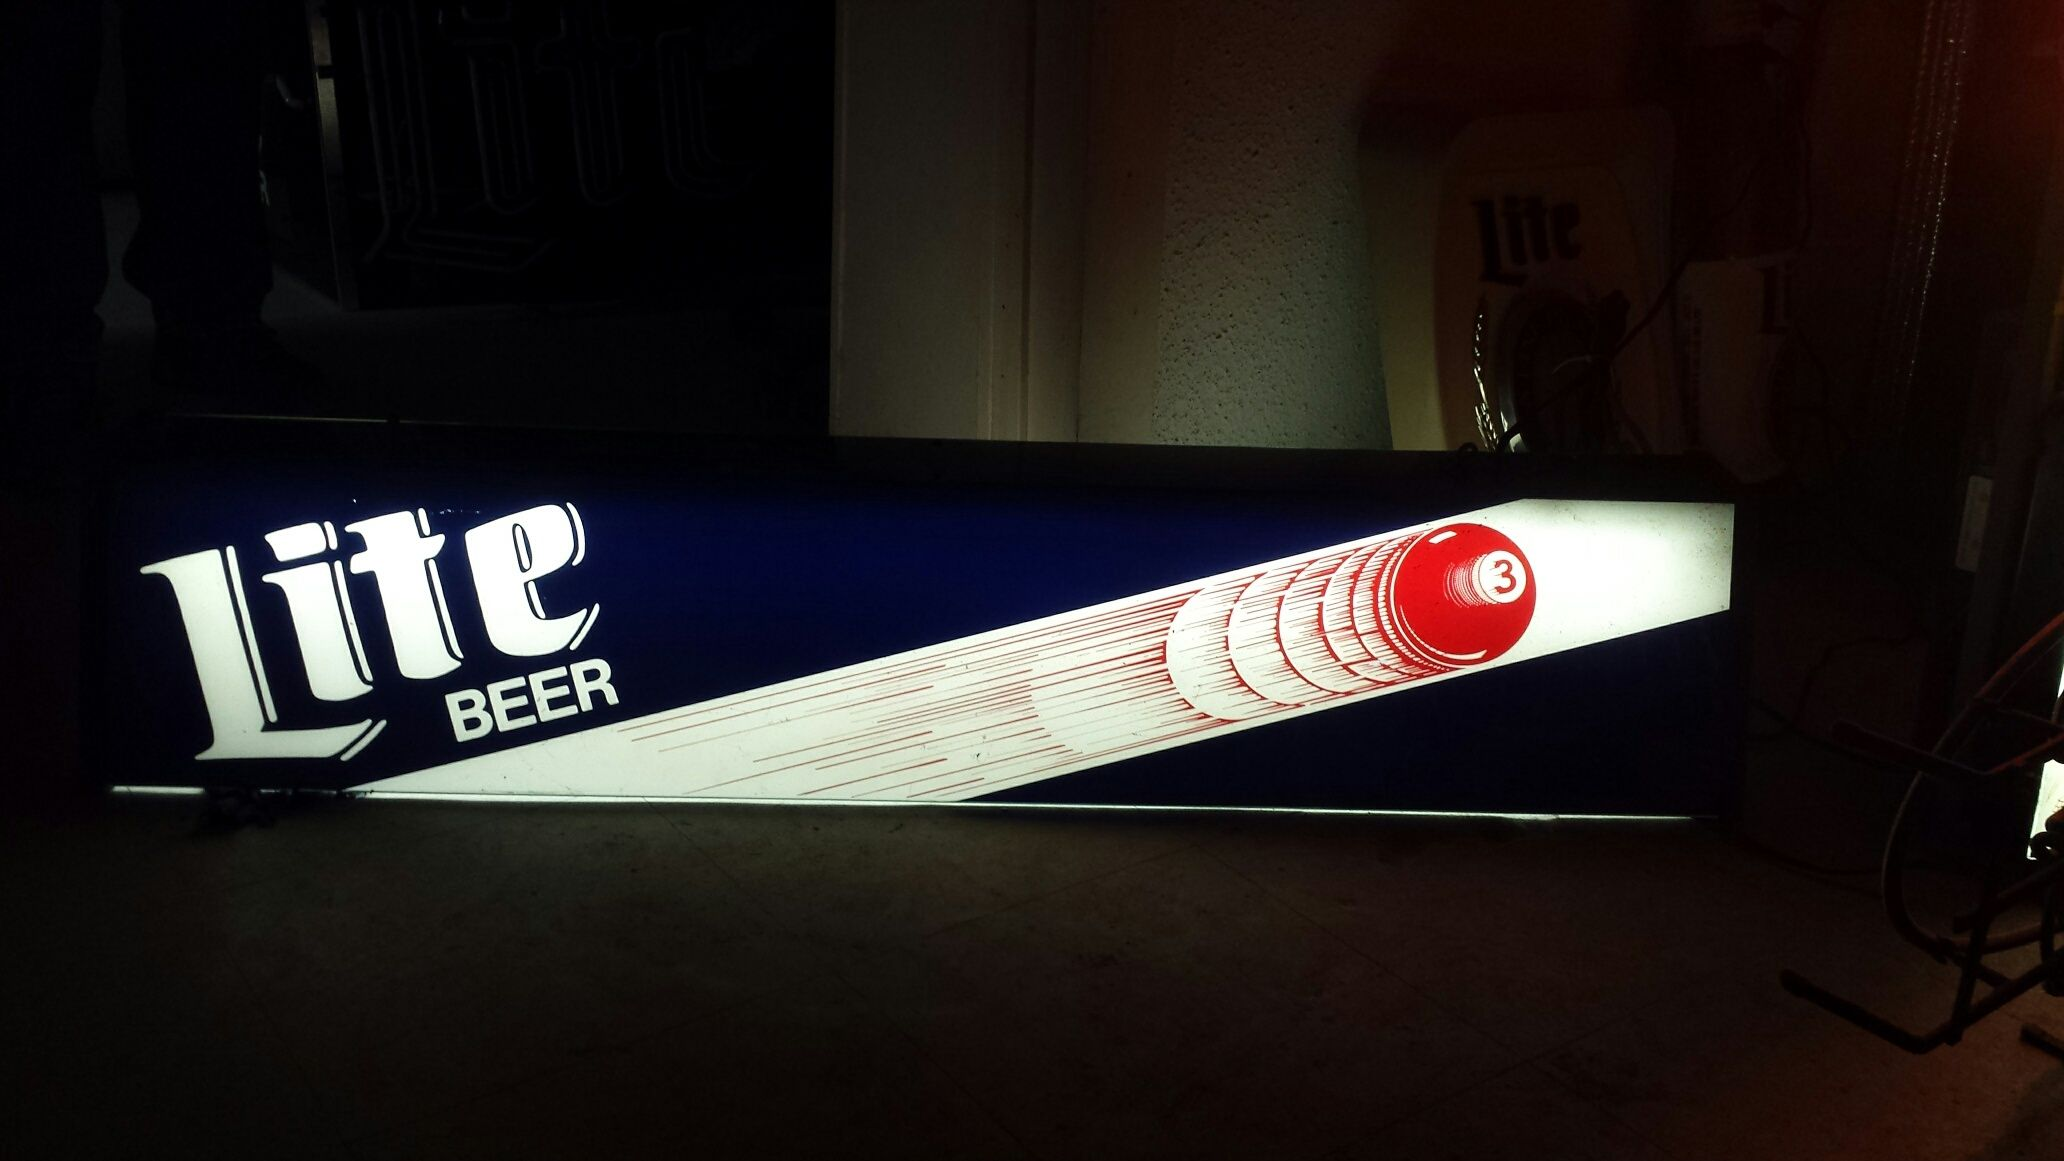 Lite BEER - Pool Table Light - Lit Up (With images) | Lite ...